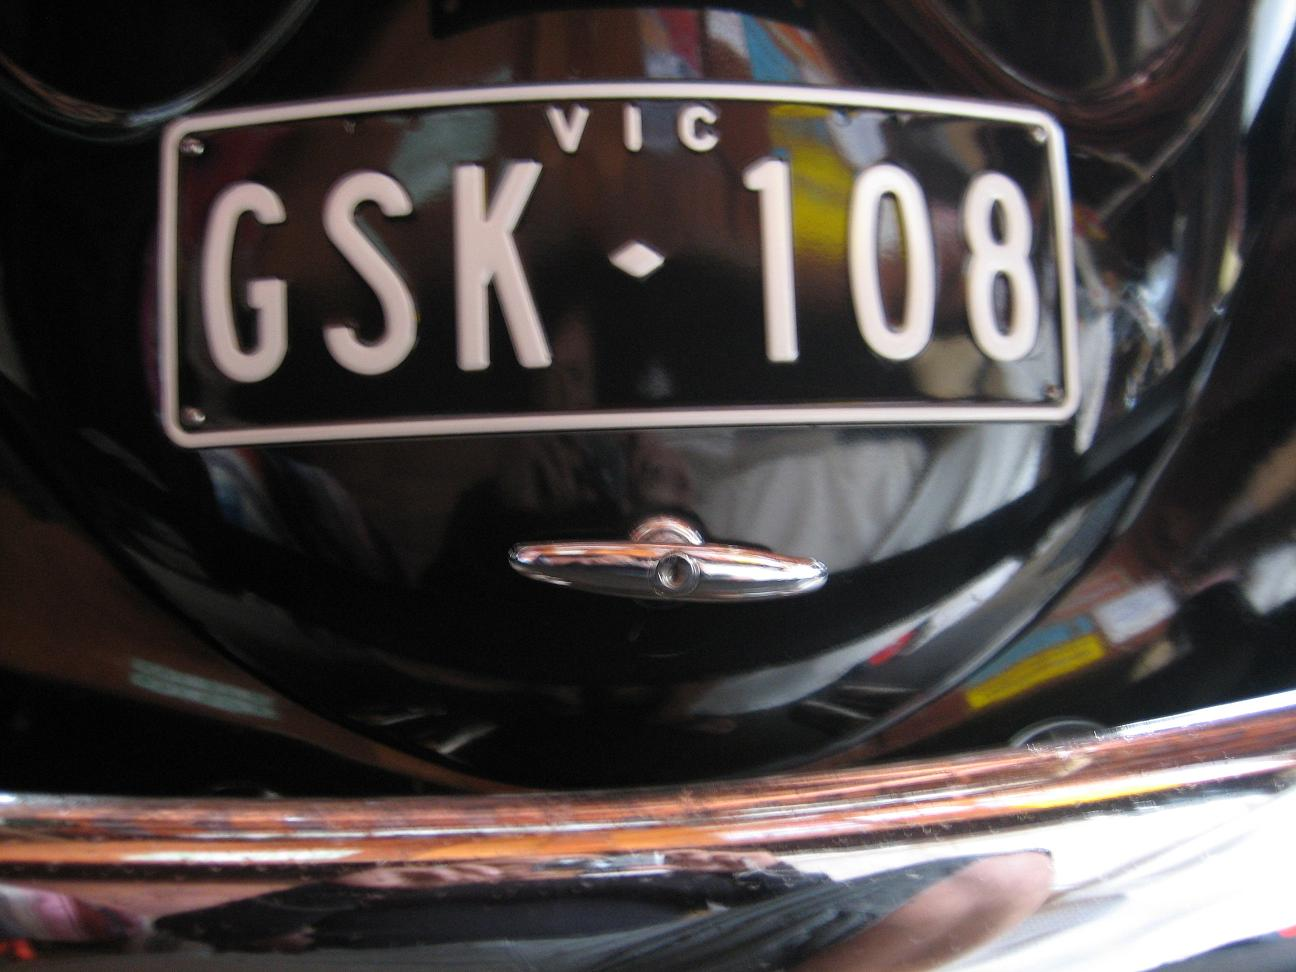 New Australian issued 50's style plates